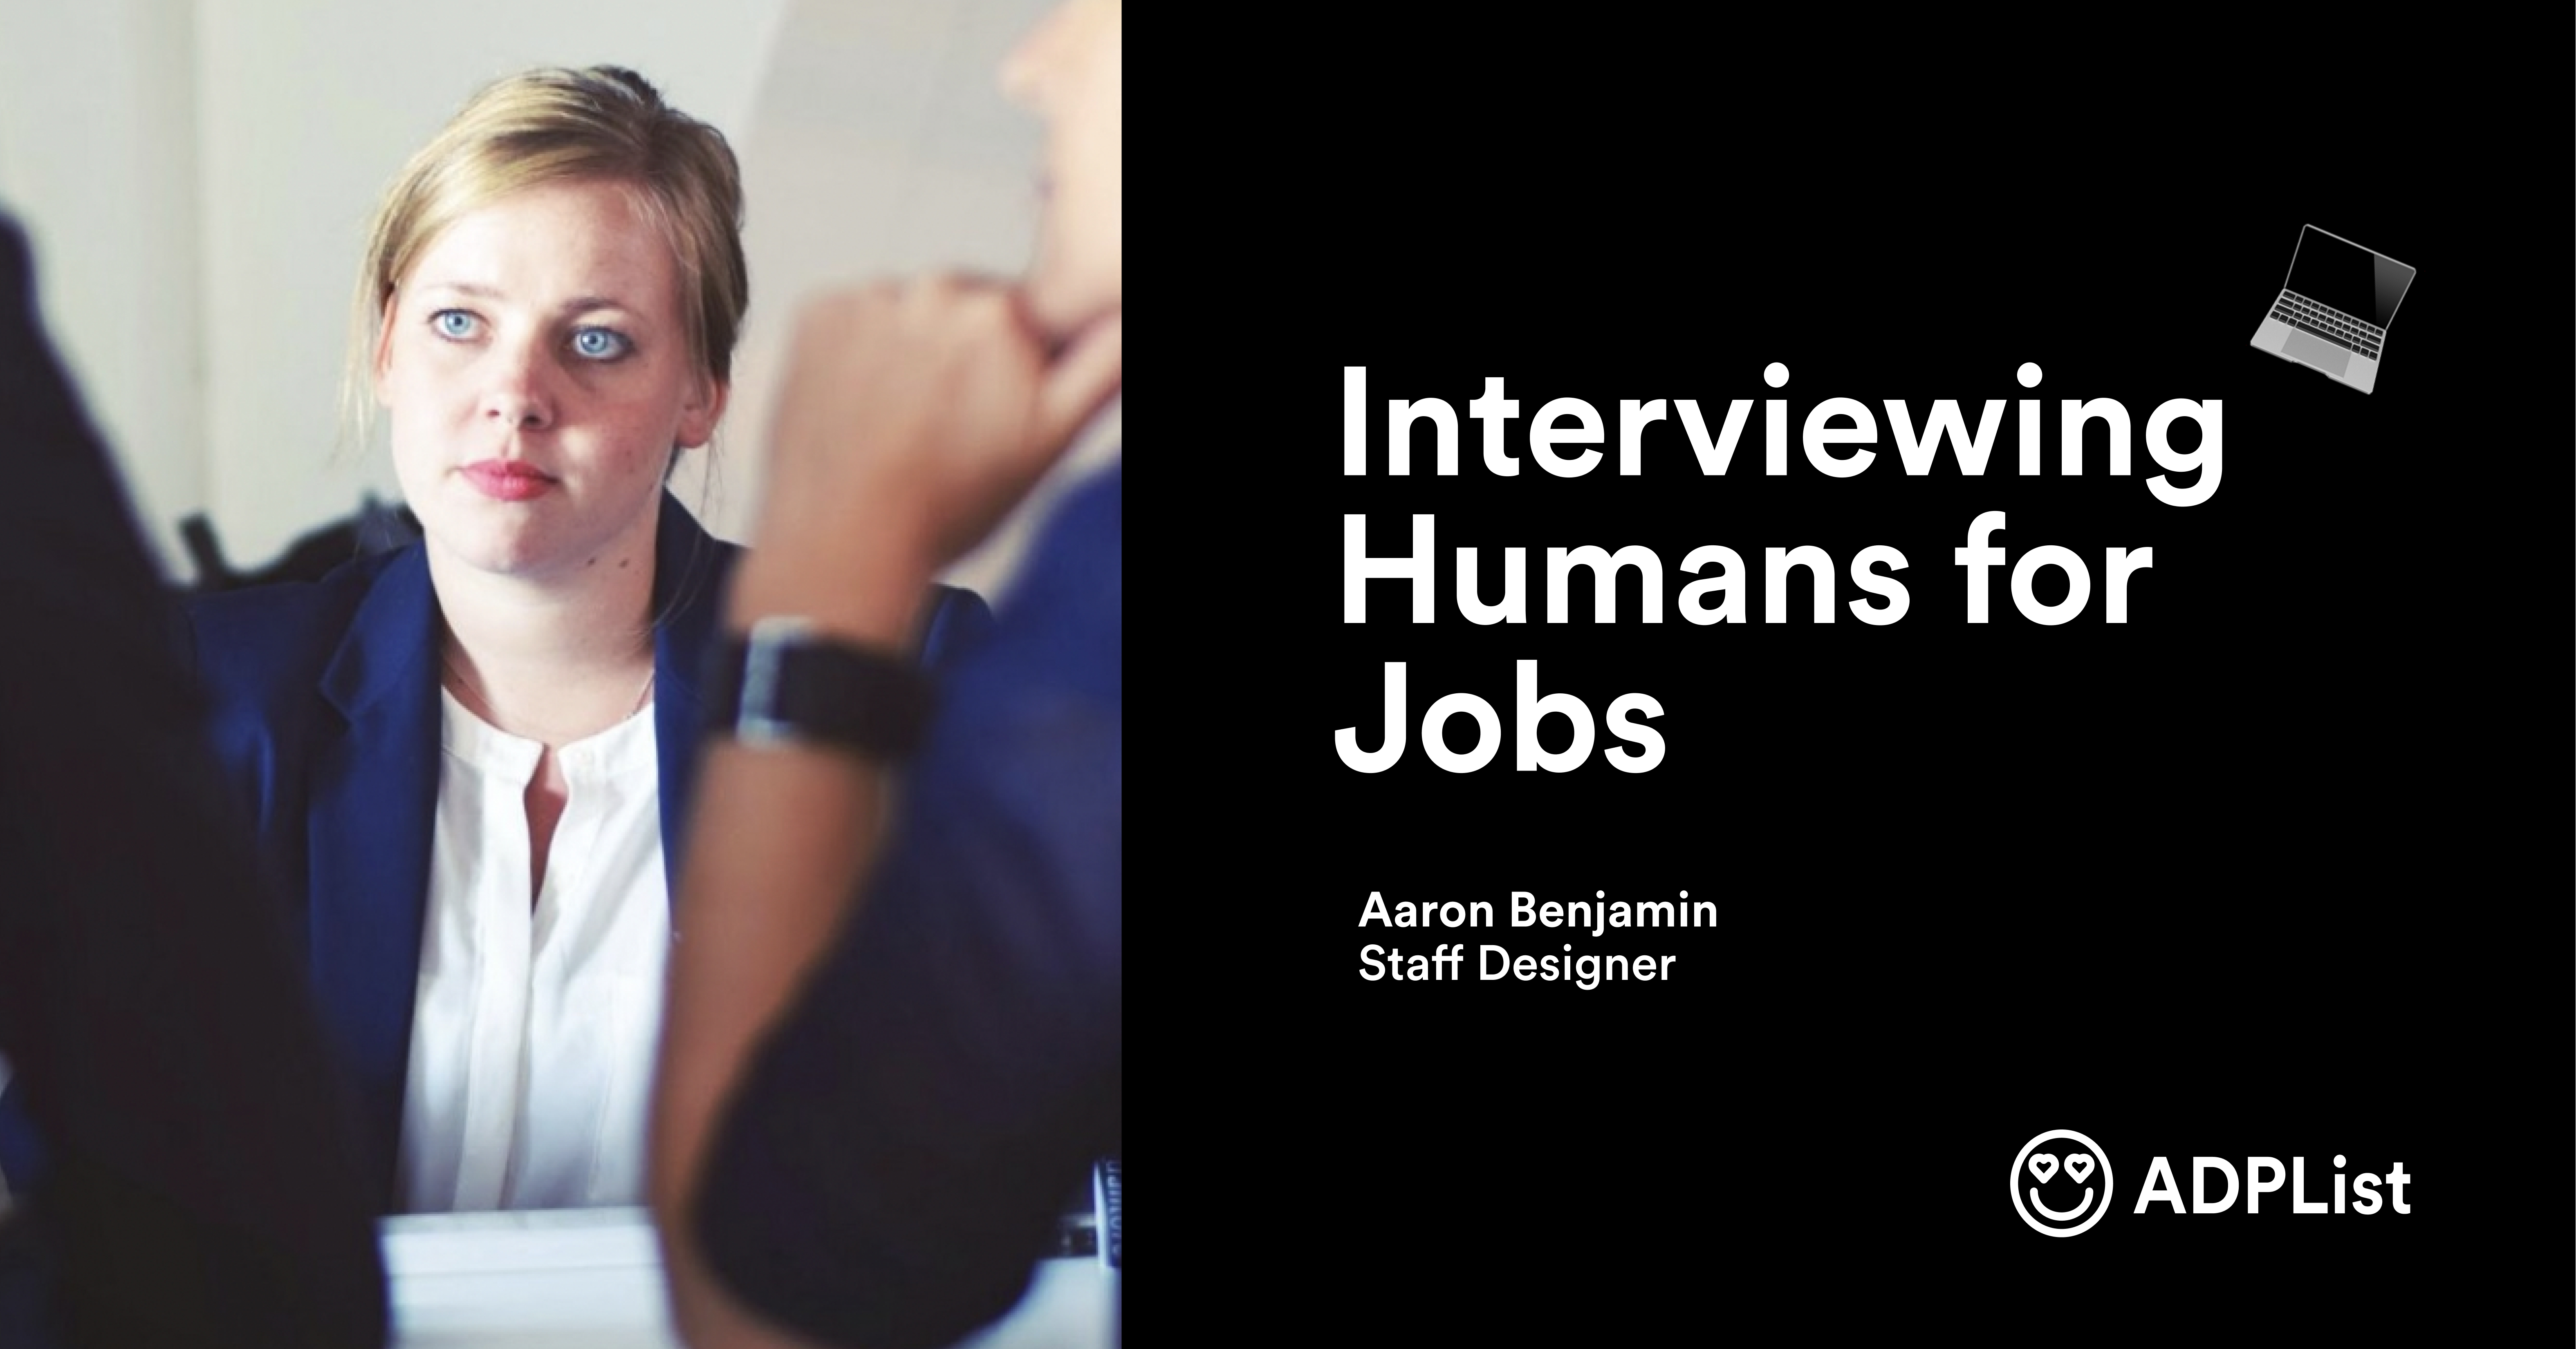 Interviewing Humans for Jobs